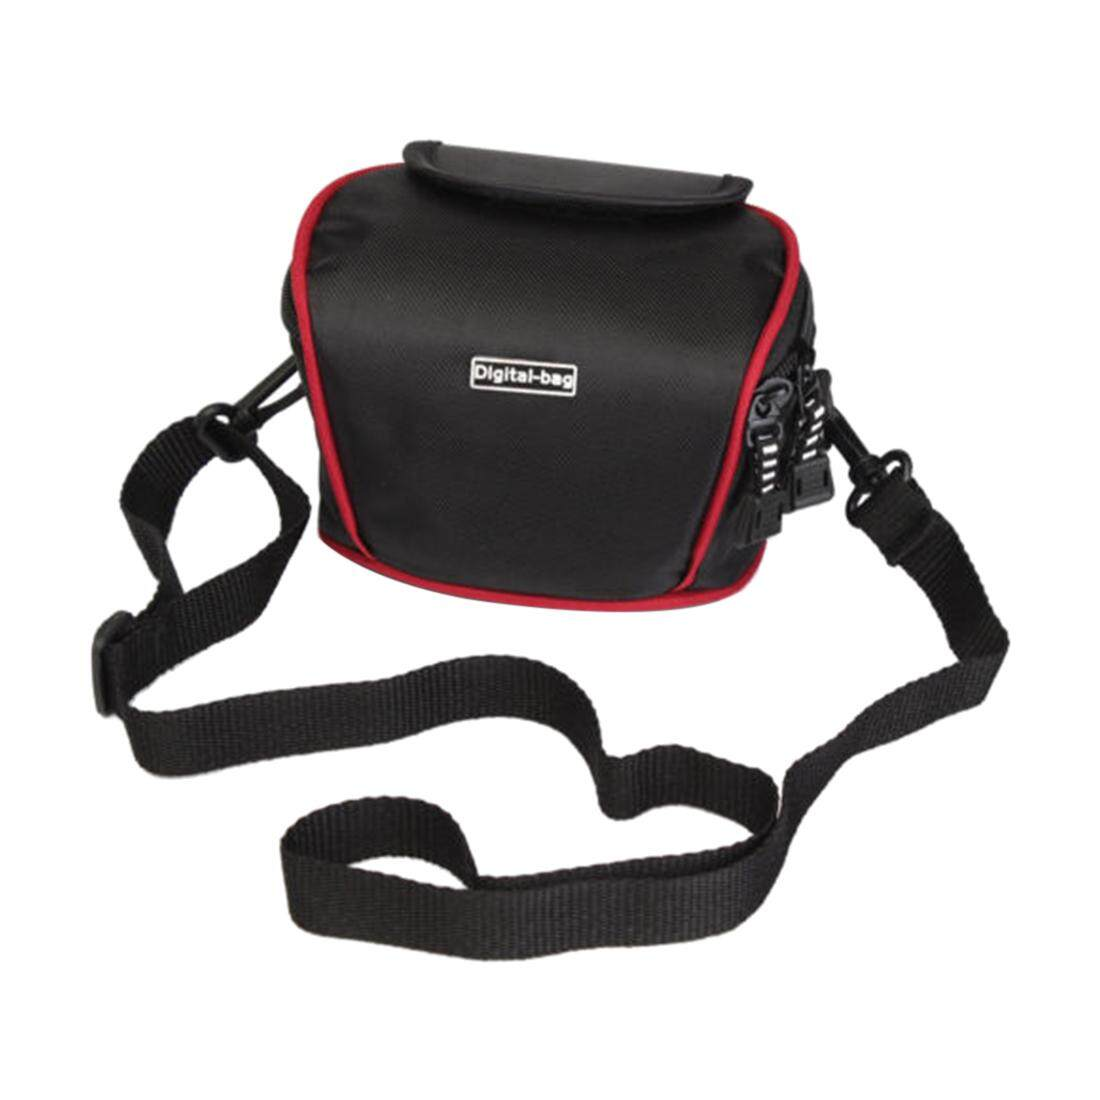 Free Shipping Compact Dslr Camera Case Bag With Strap For Canon Nikon SONY Panasonic Samsung